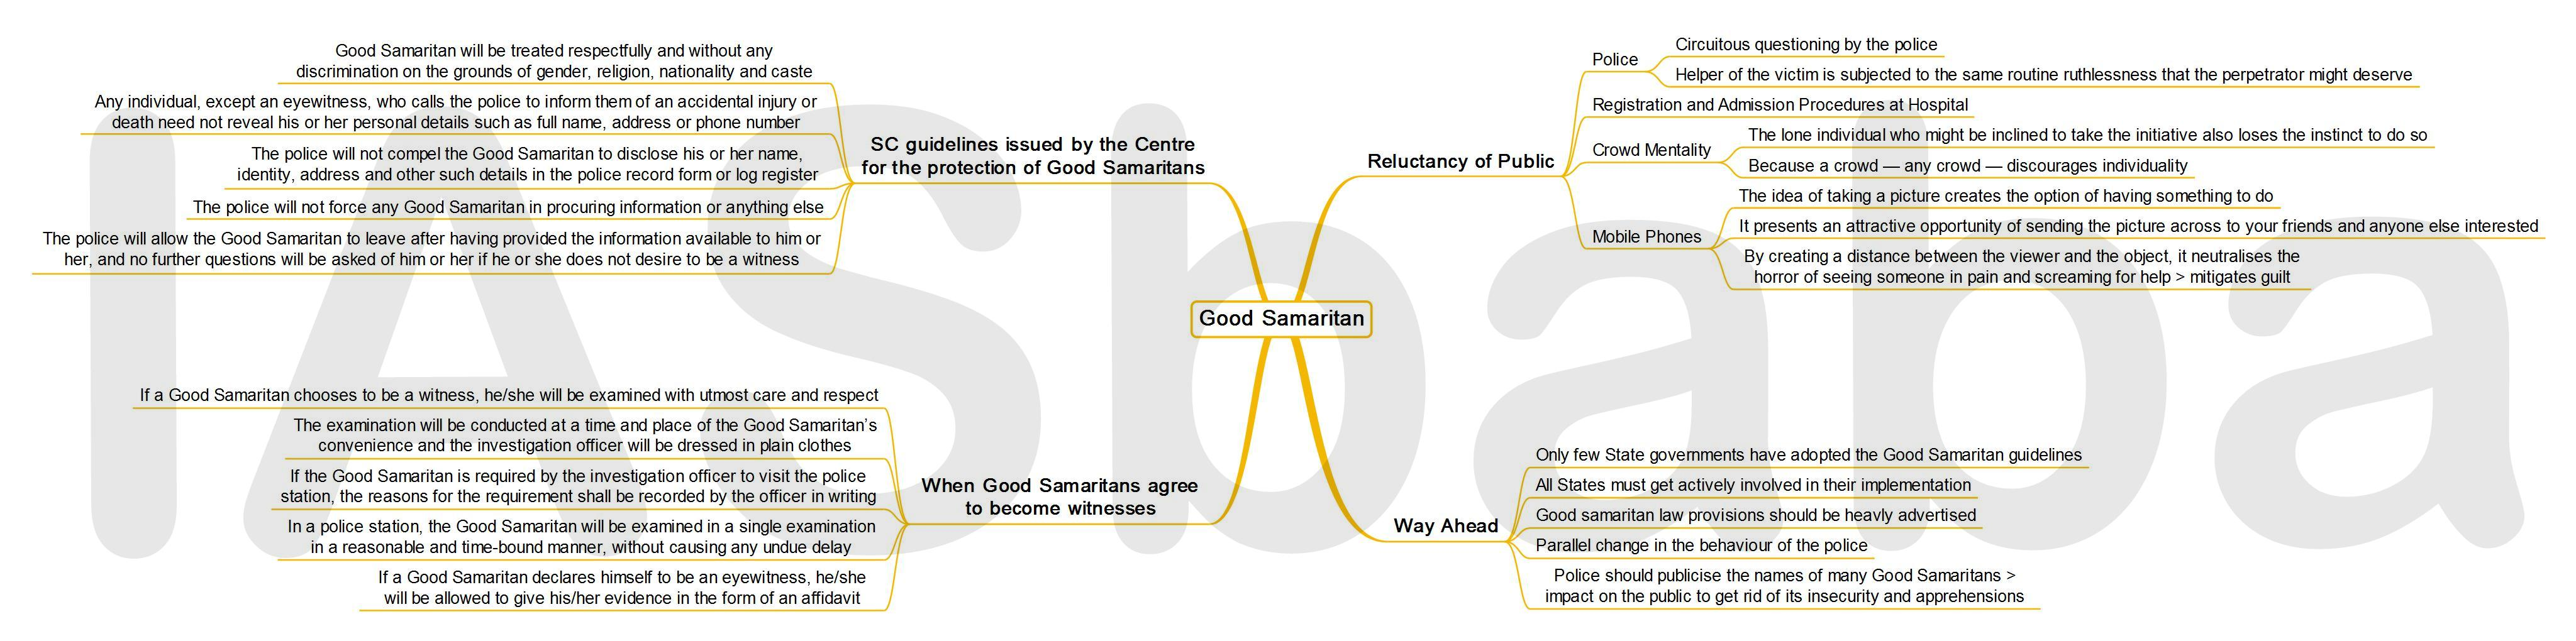 IASbaba's MINDMAP : Issue - Good Samaritan